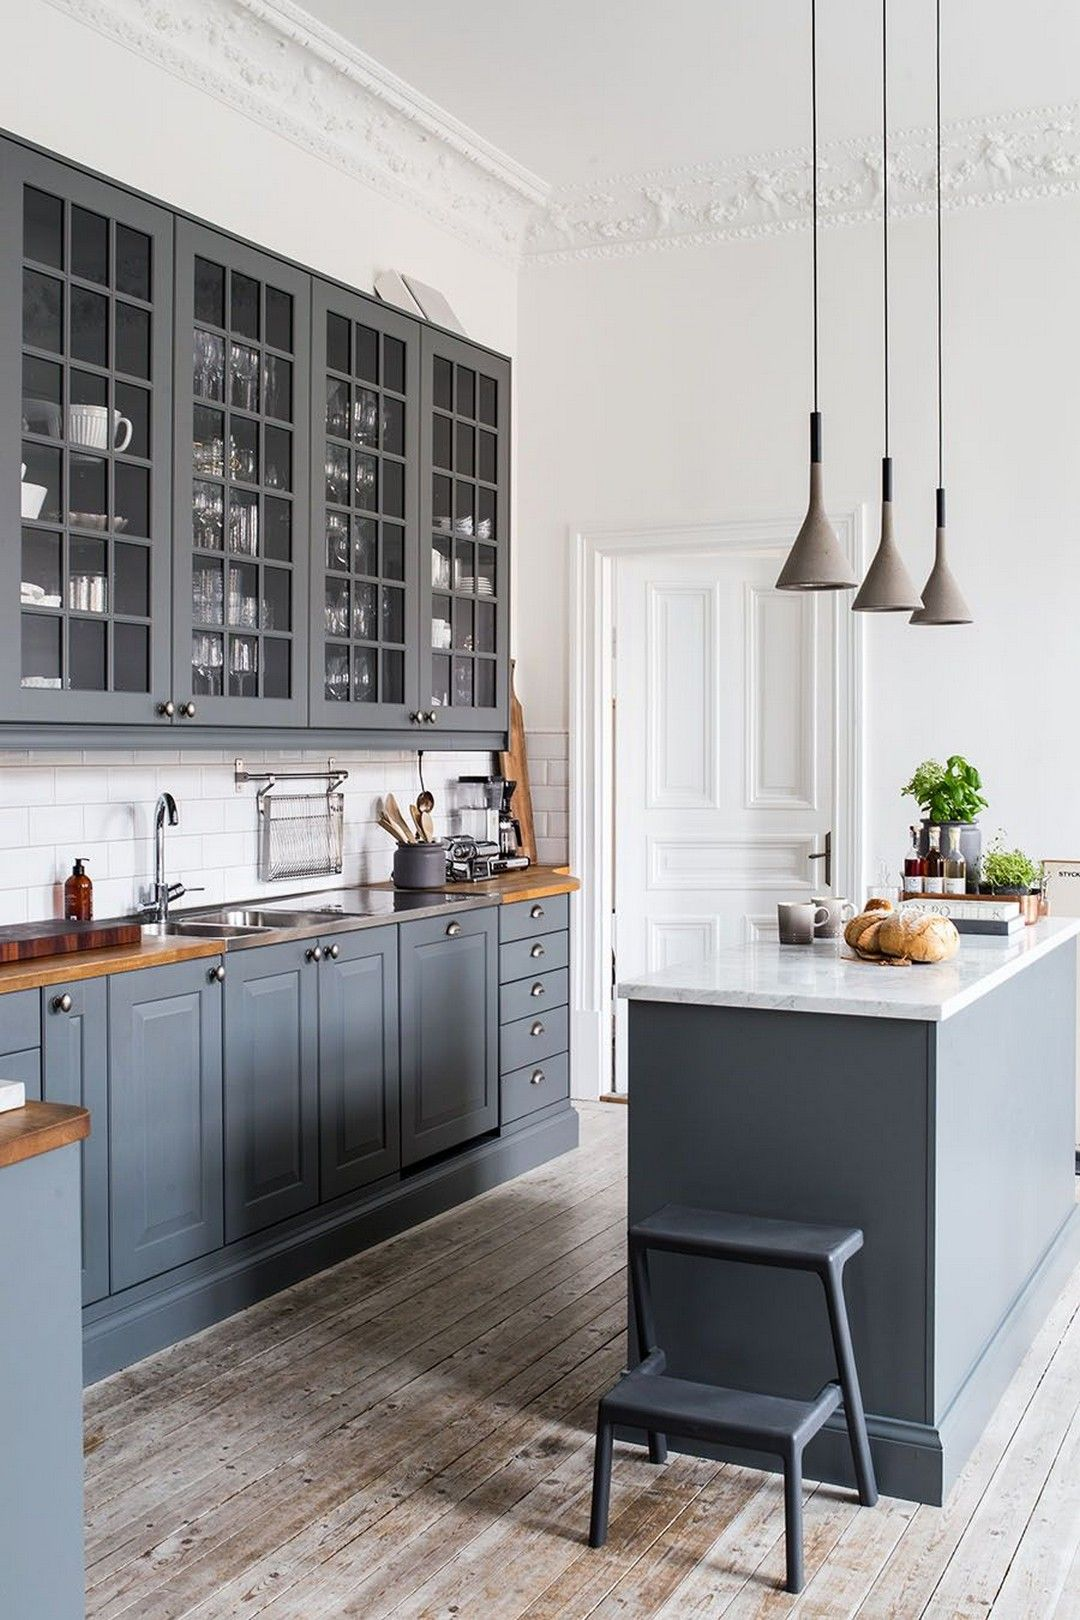 48 Simple and Modern Historic Homes Kitchen Details | Küche ...